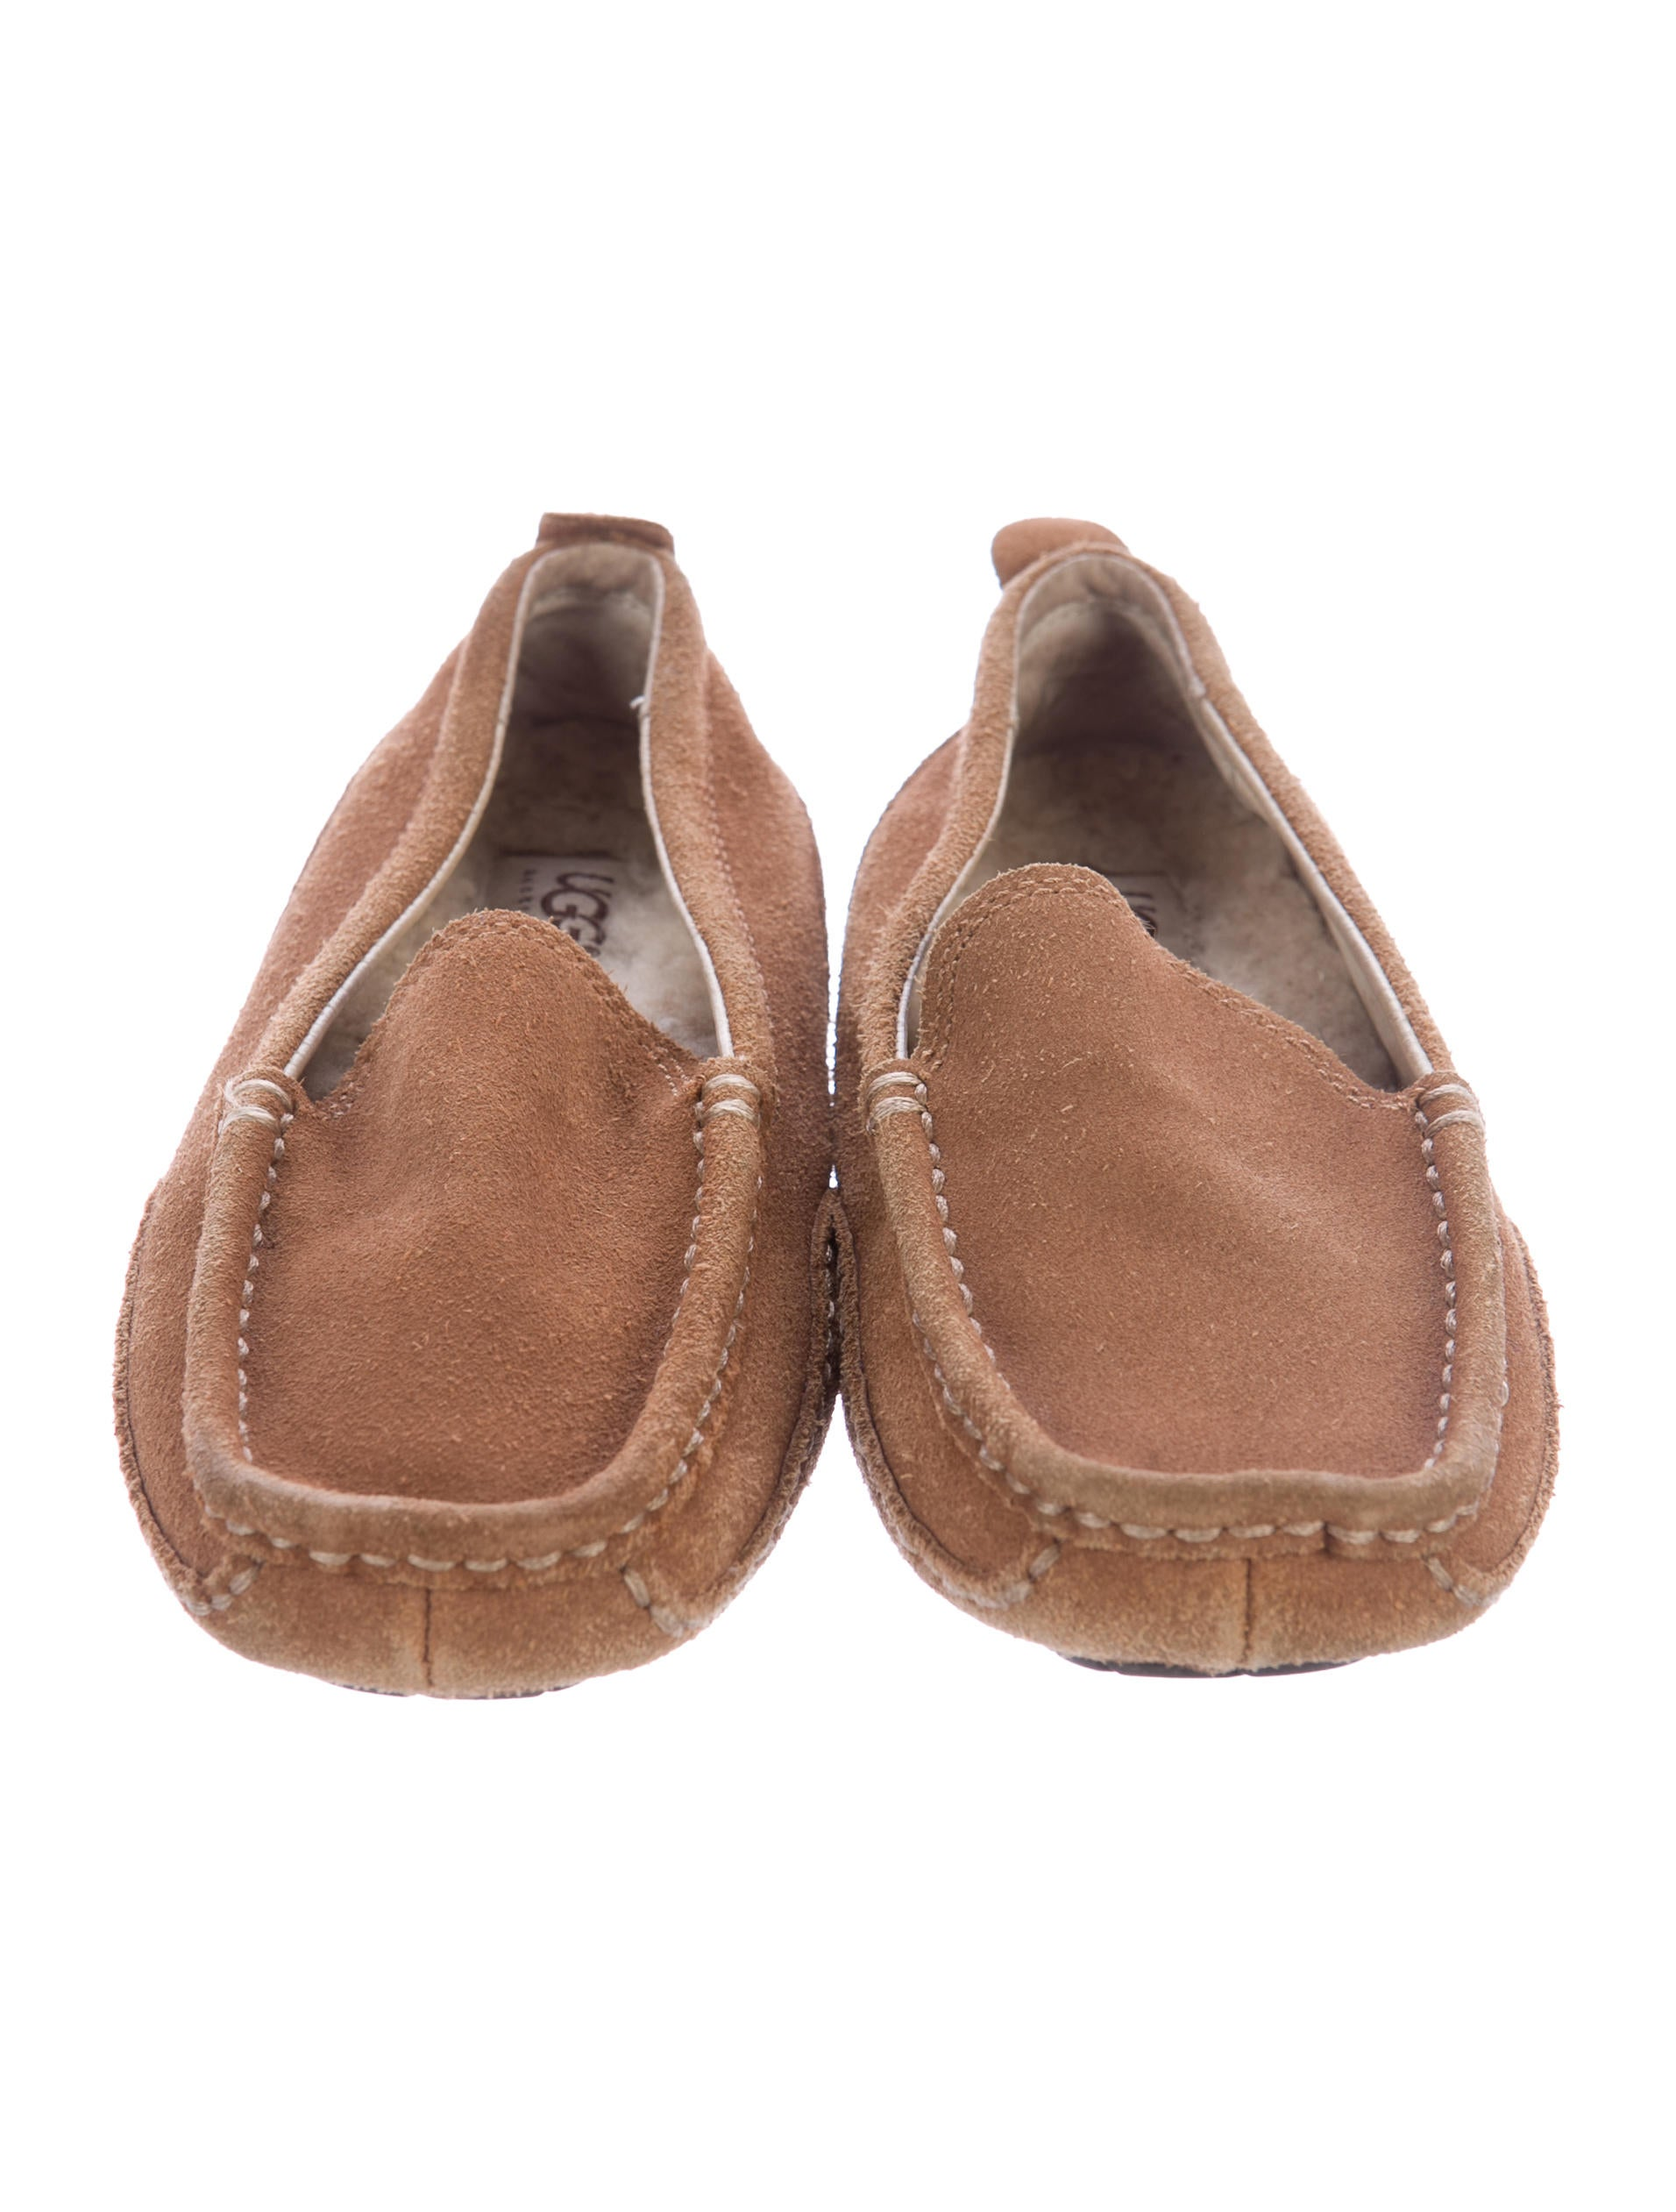 Boys' Loafers and Slide On Shoes Easy to slip on and off, Crocs™ boys' loafers are the ideal choice of footwear. See for yourself why boys love wearing Crocs loafers!